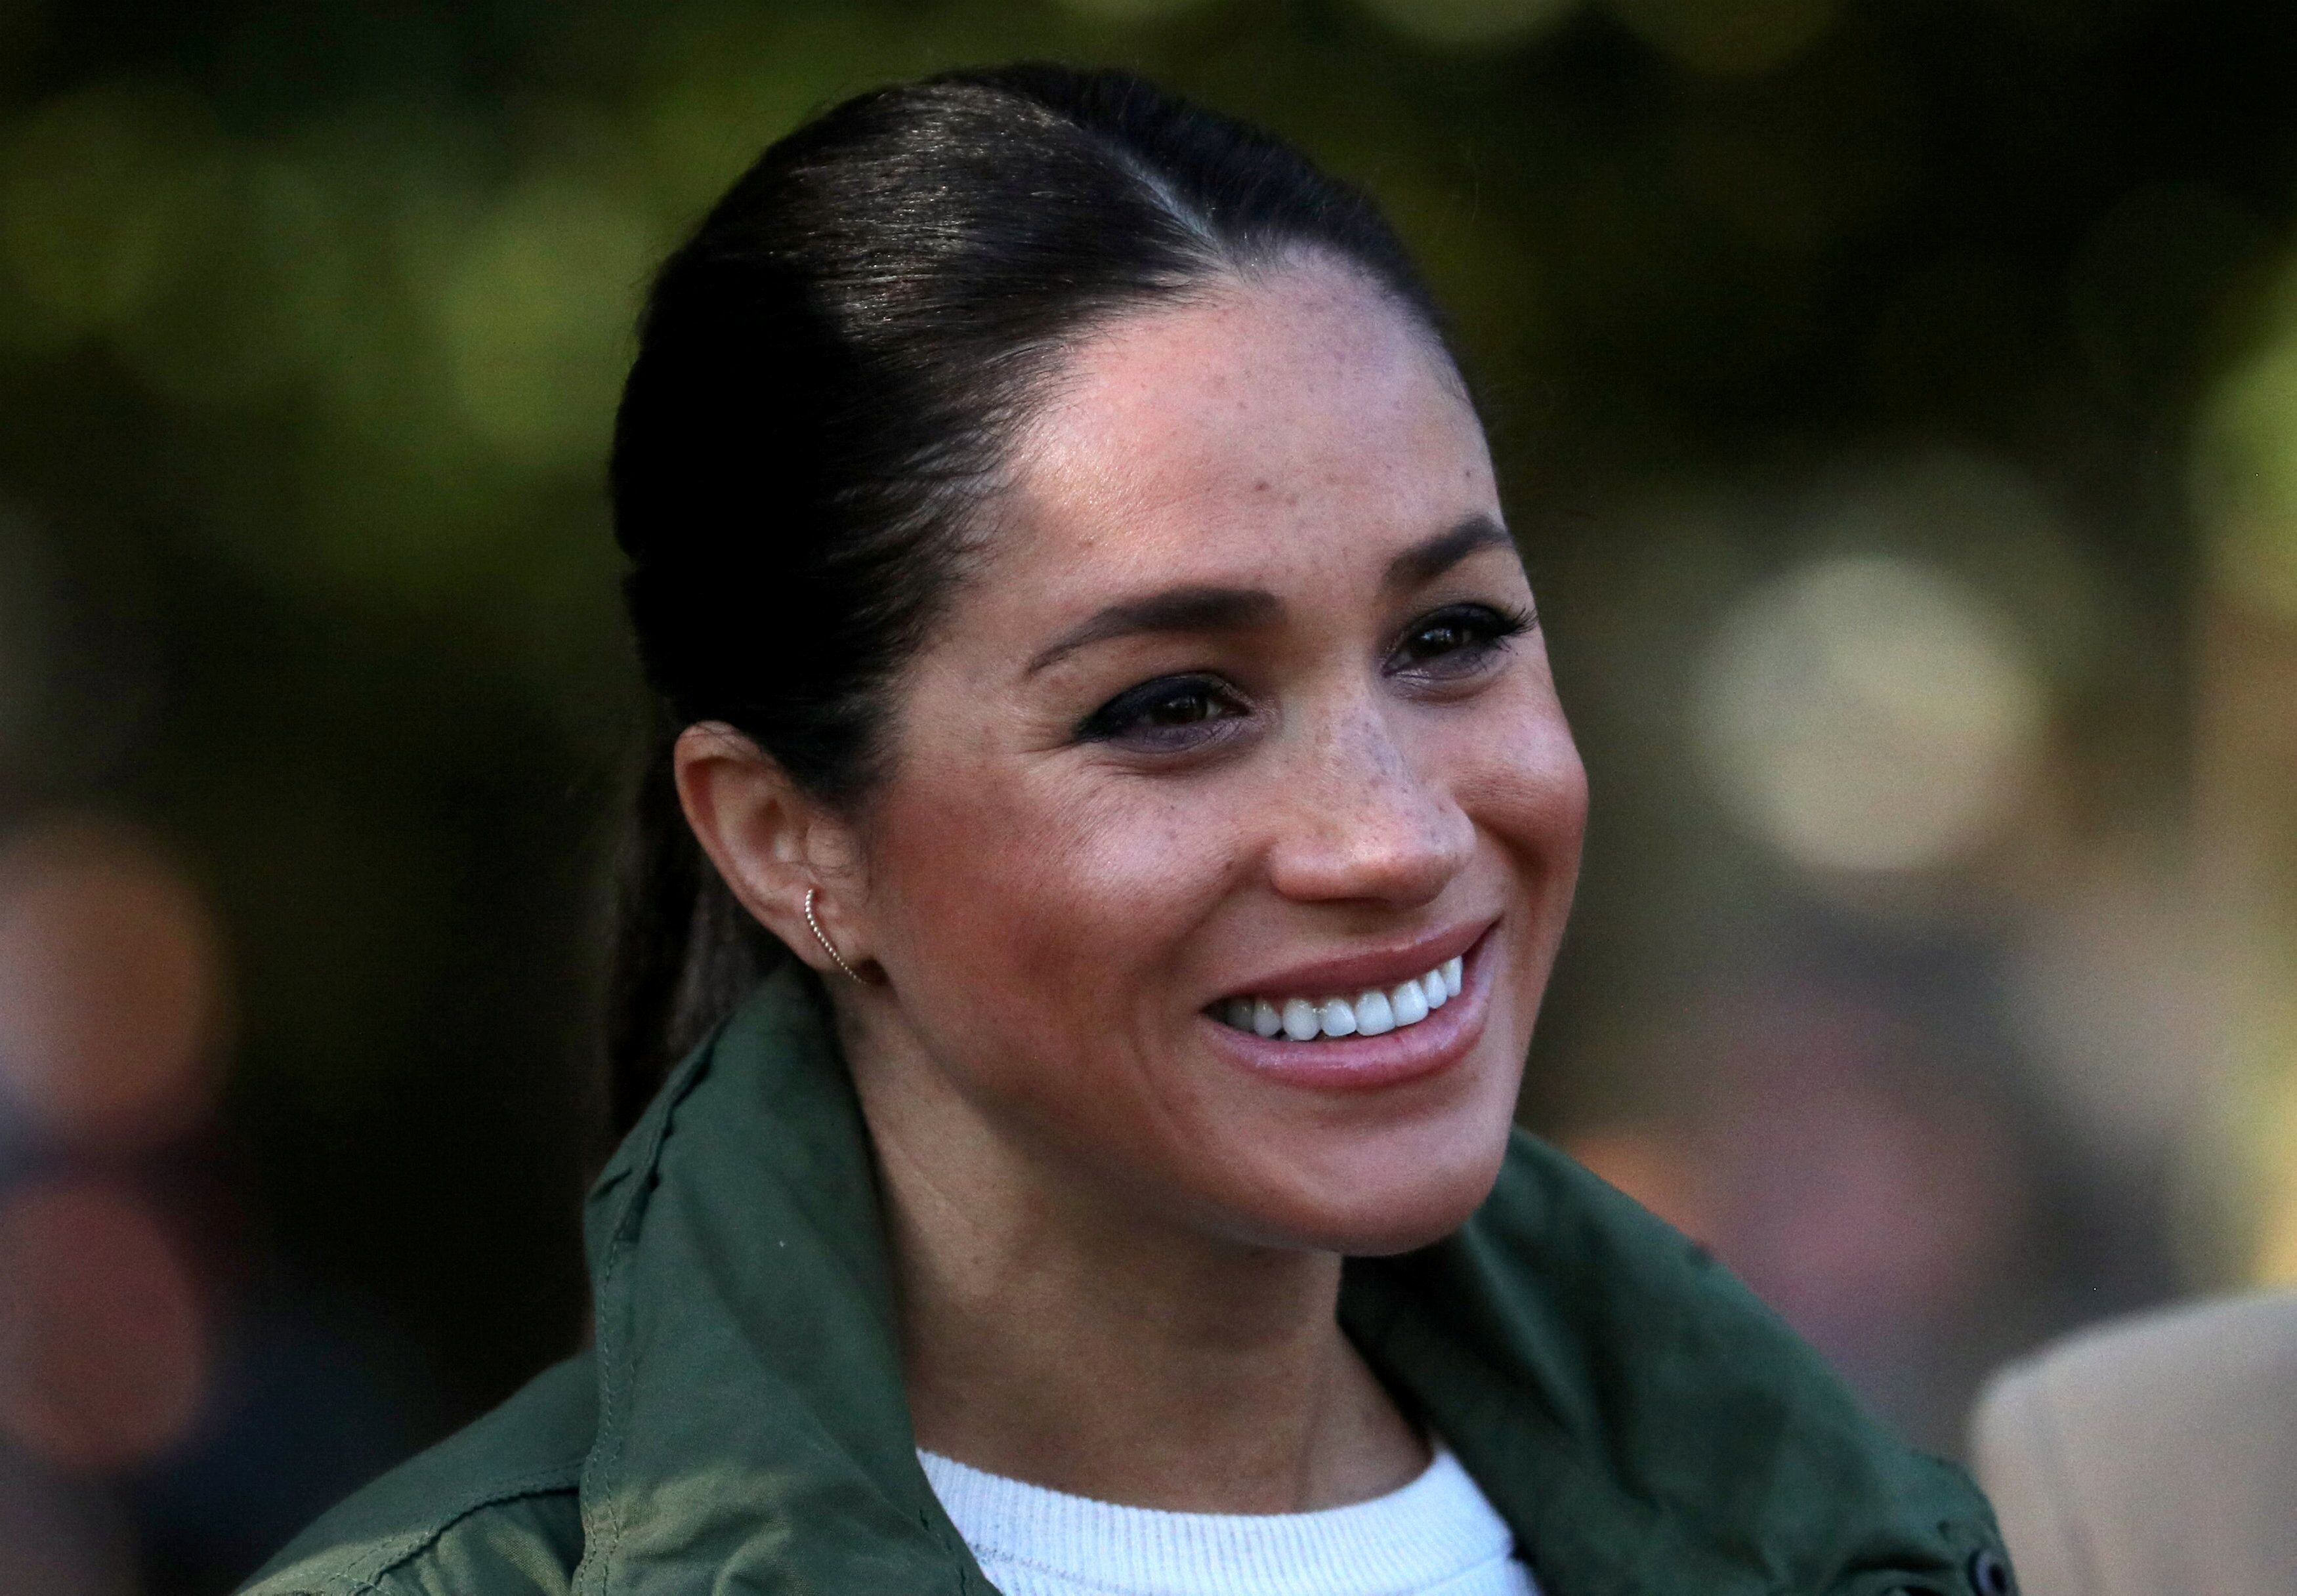 The Duchess of Sussex/ Source: Getty Images